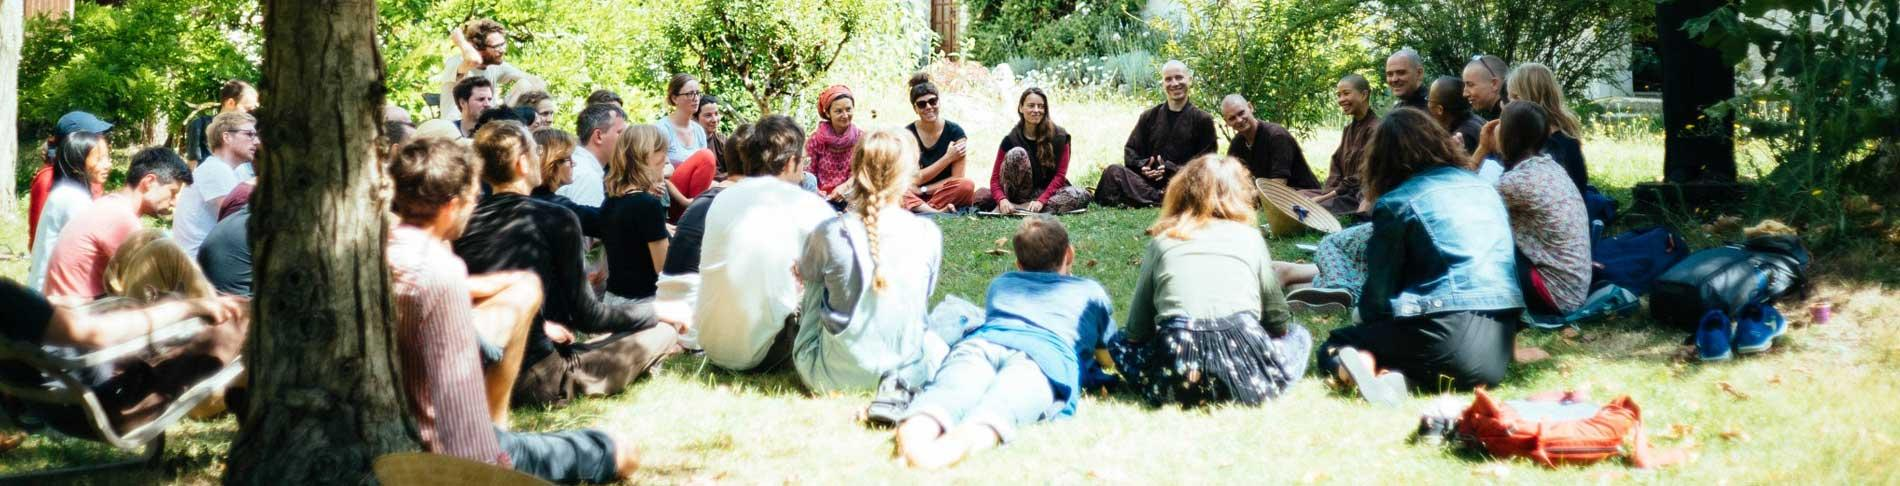 Meditation retreat at The Barn at The Sharpham Trust